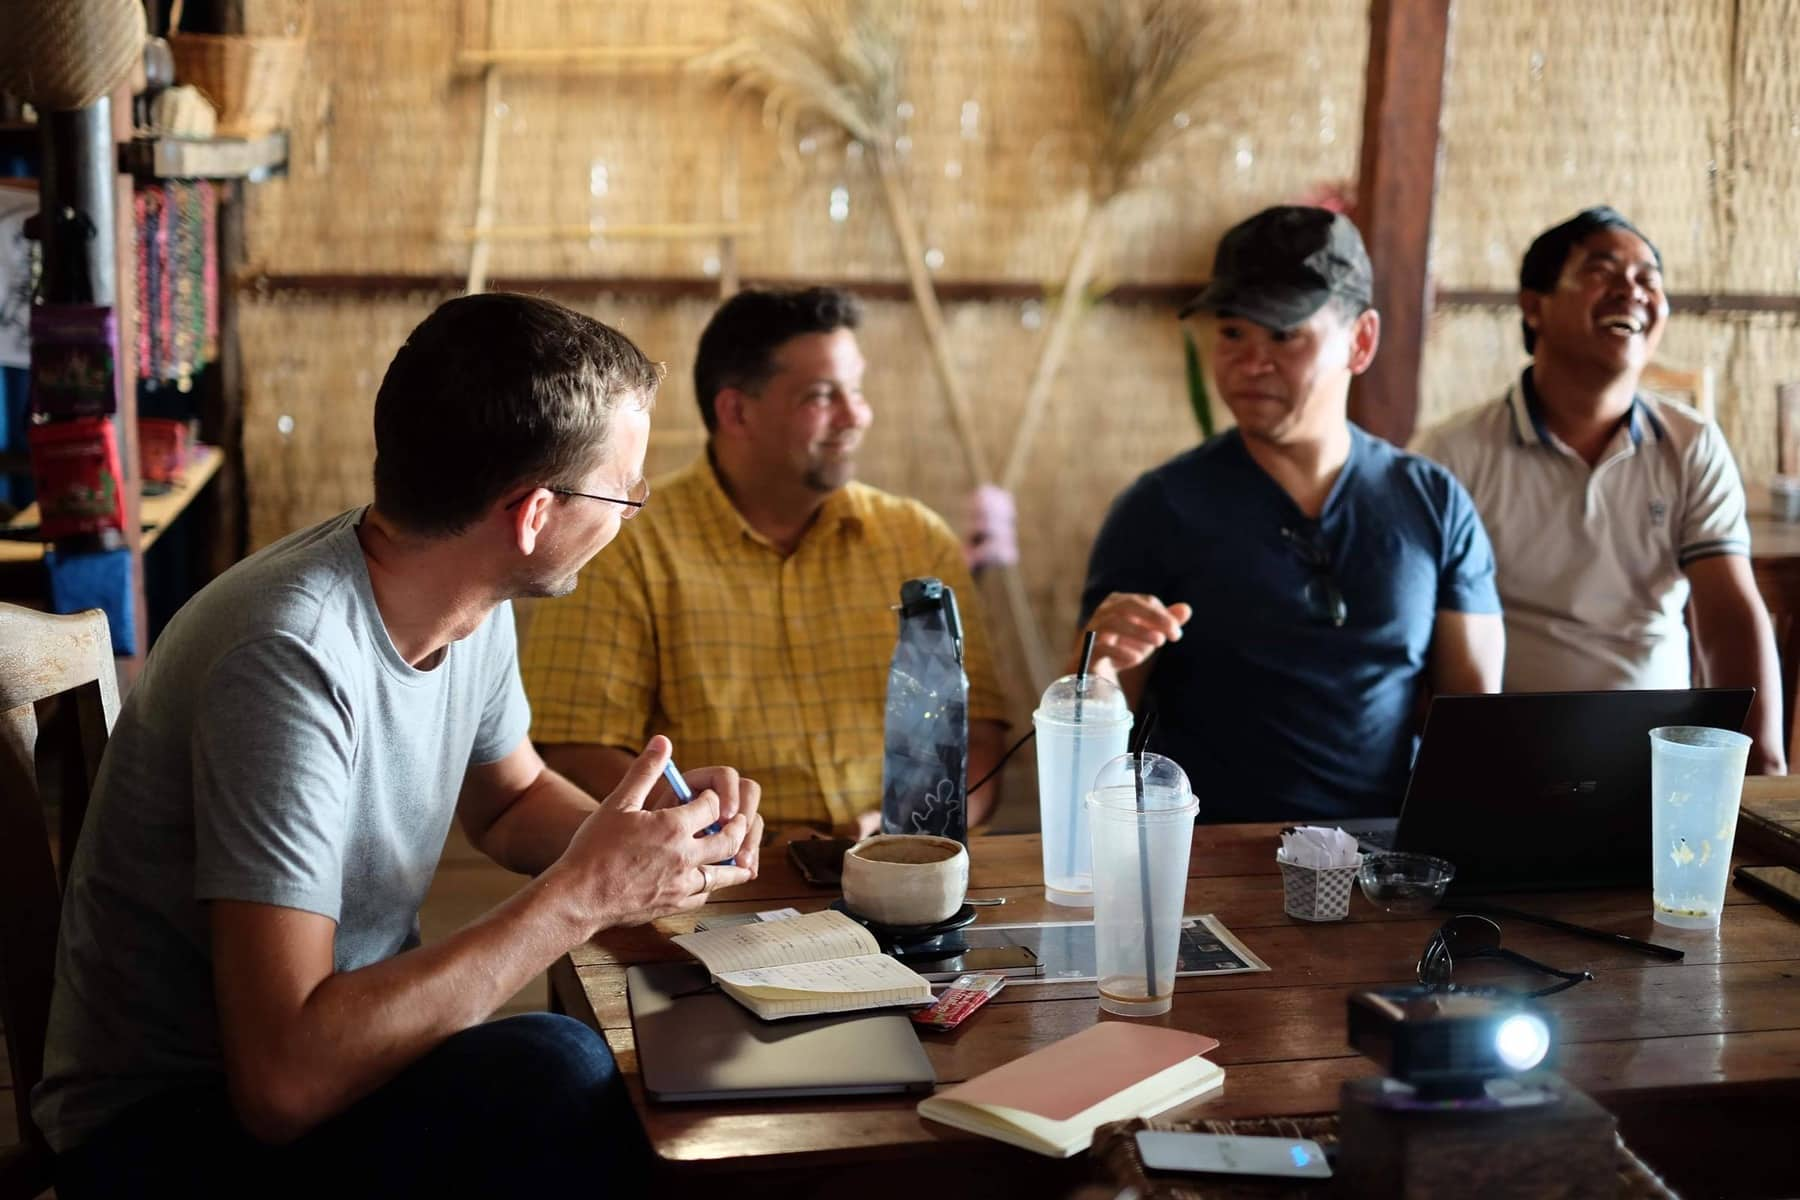 A missionary telling a story in Cambodia